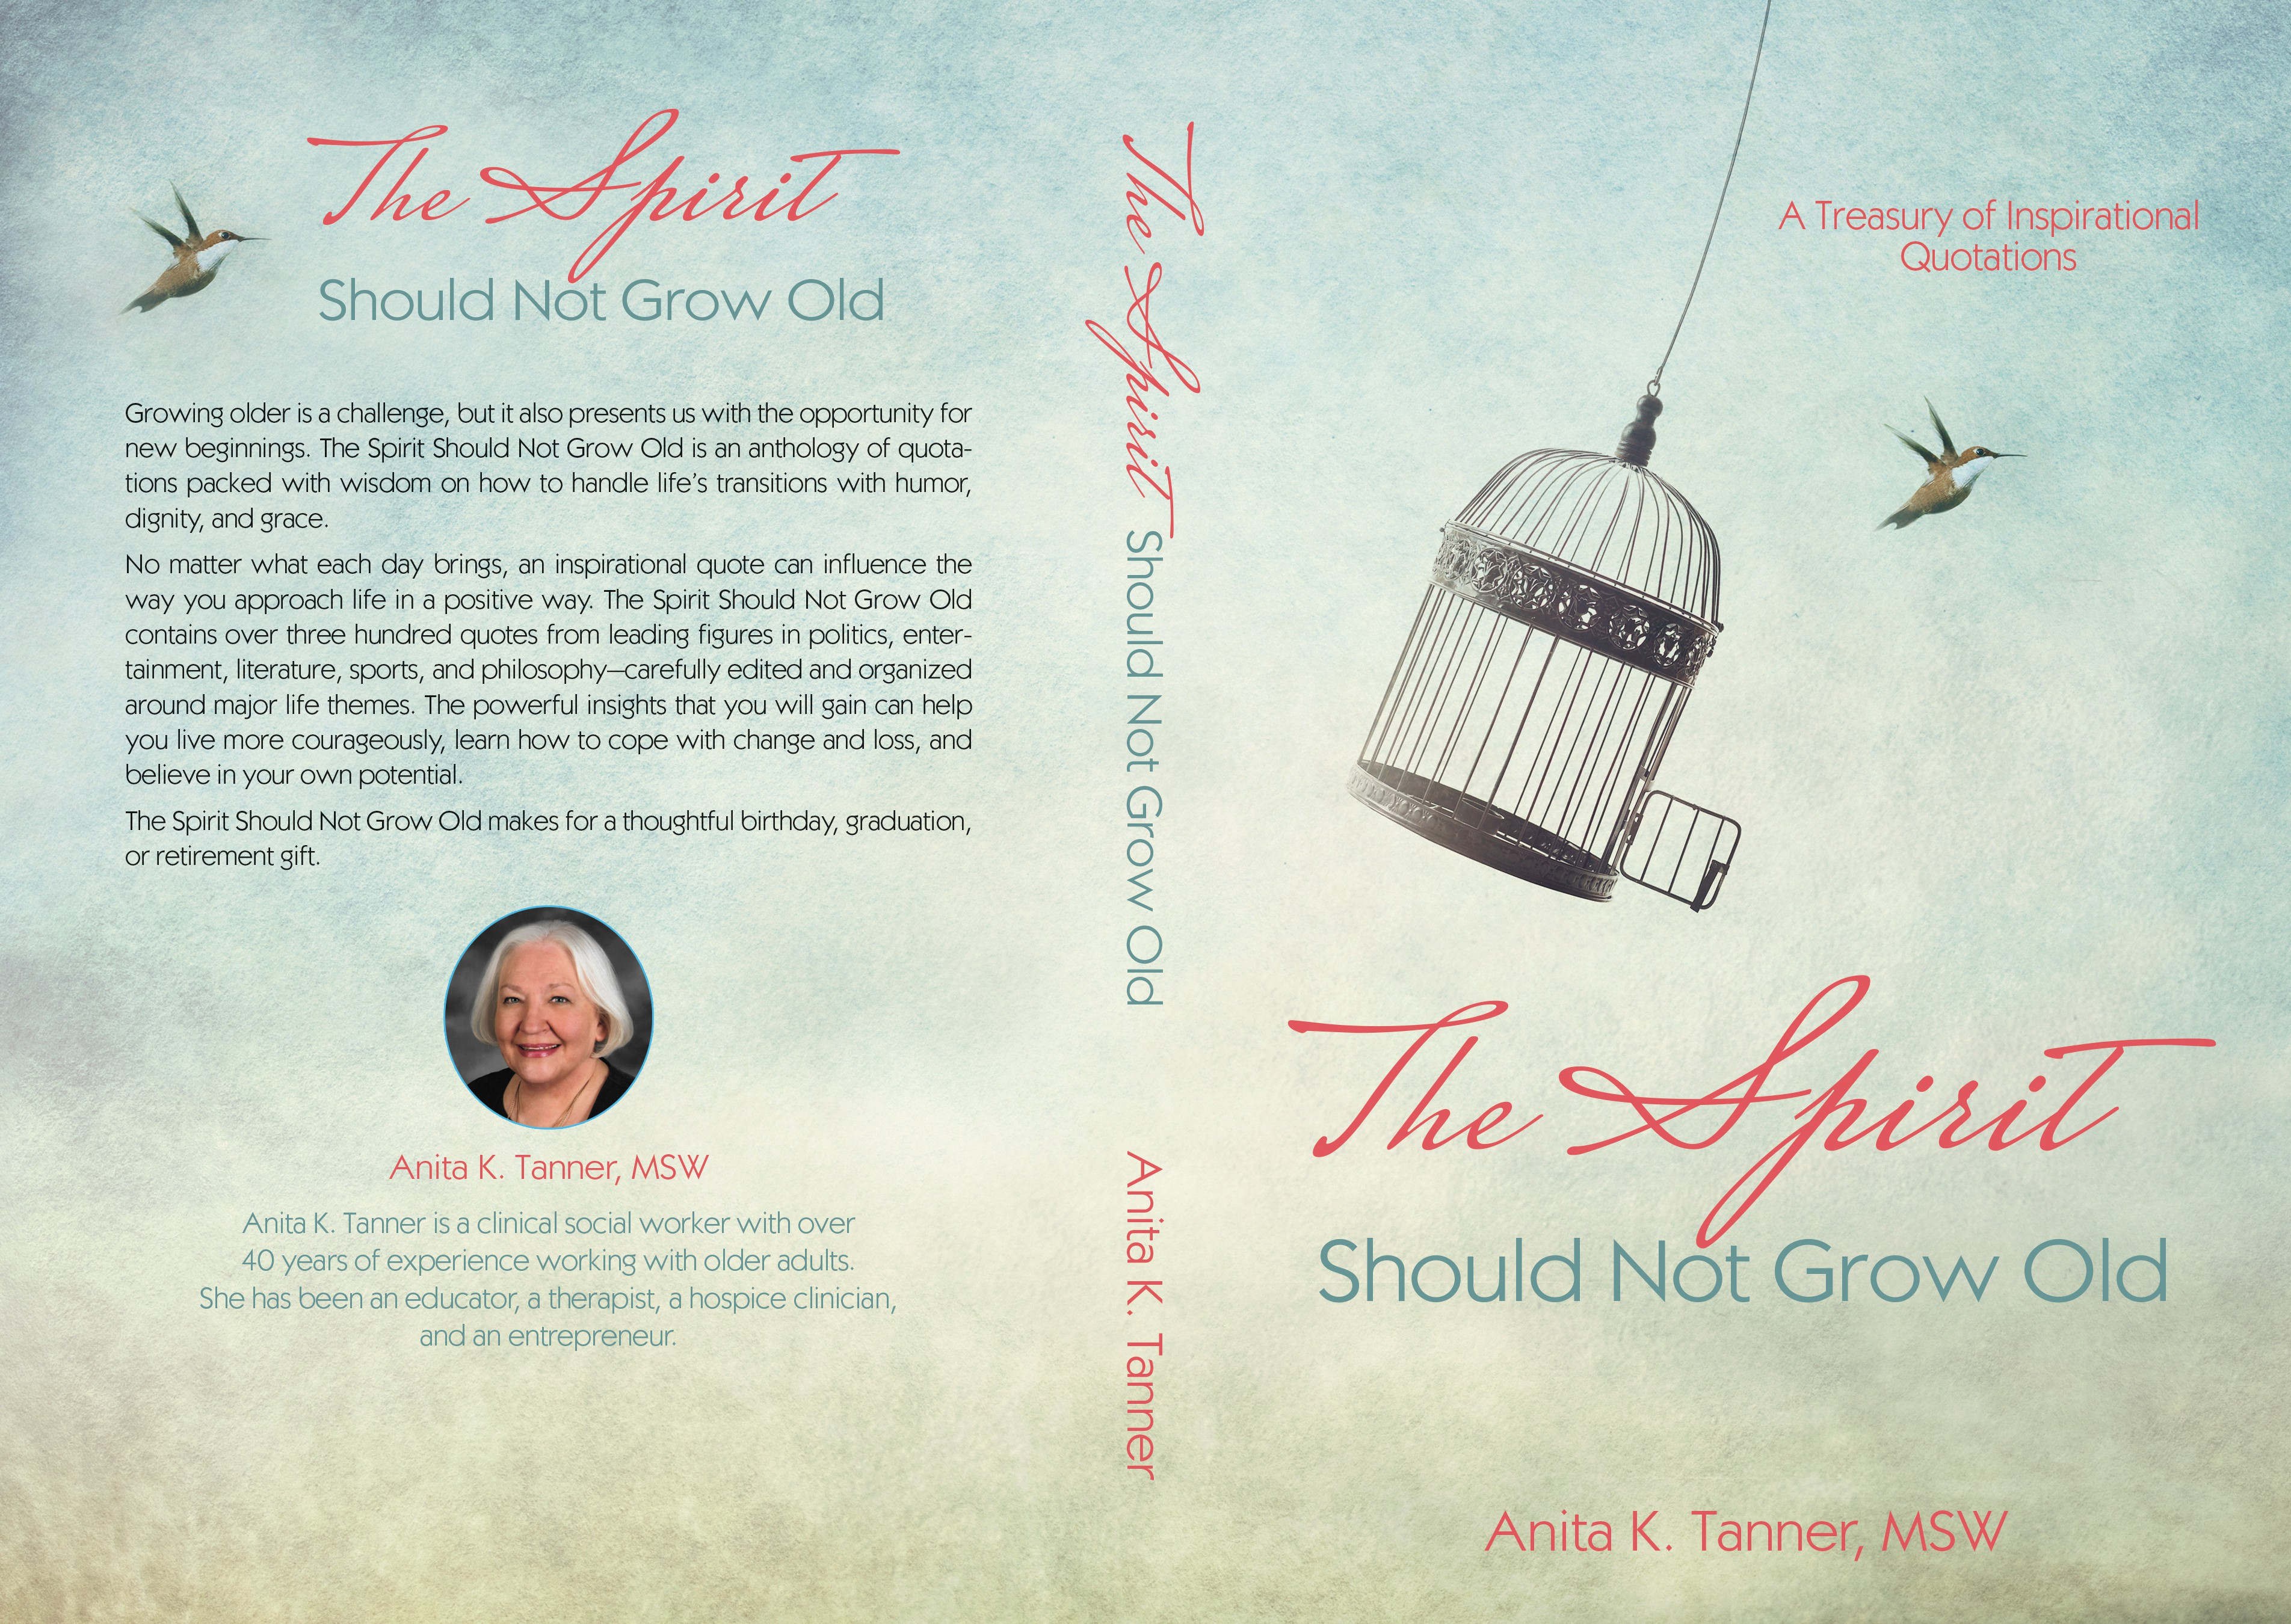 Create a modern book cover for a book of quotations